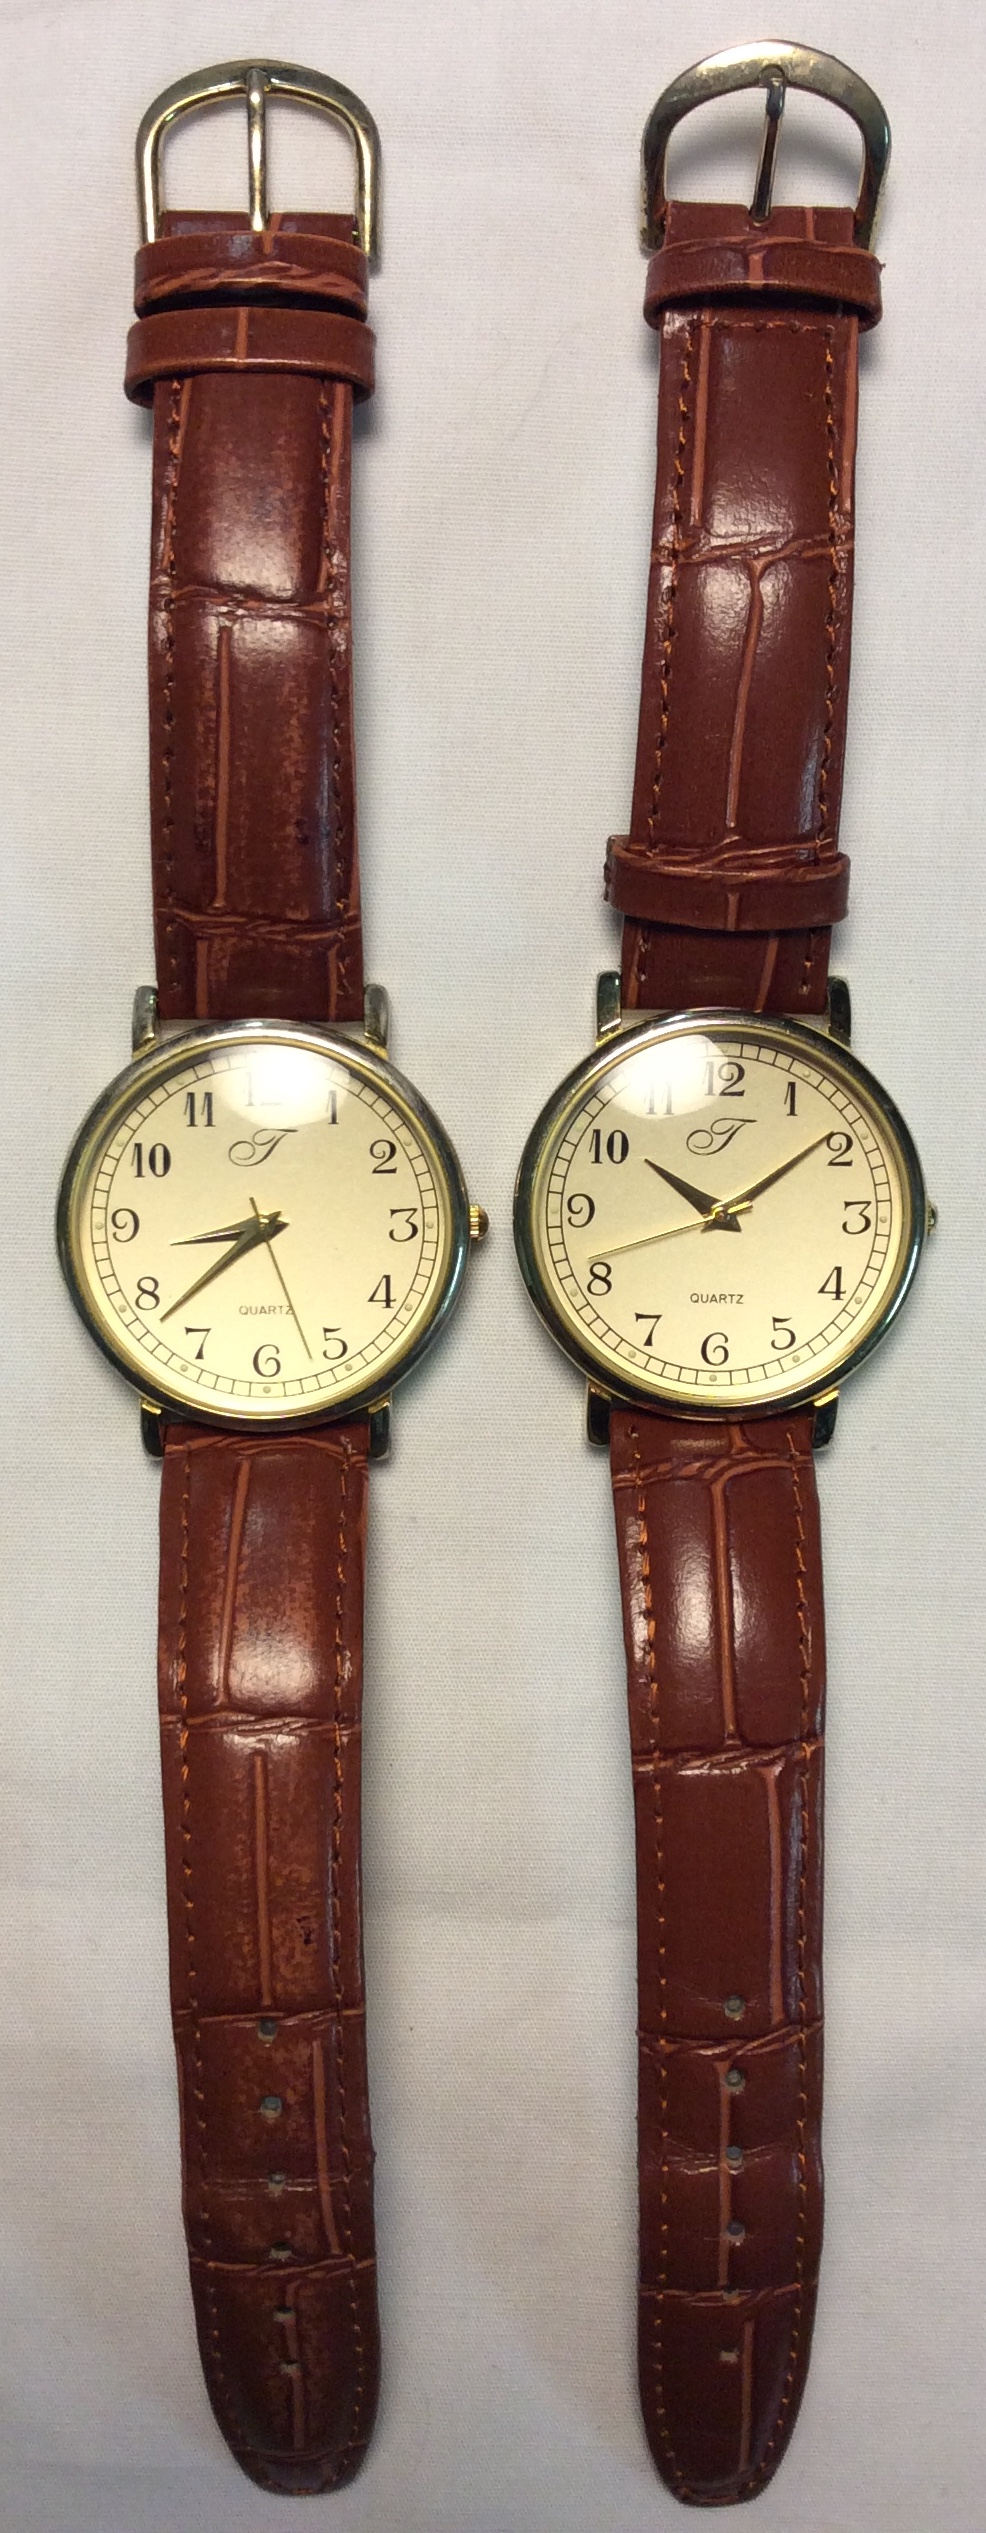 J watch - round gold face with gold